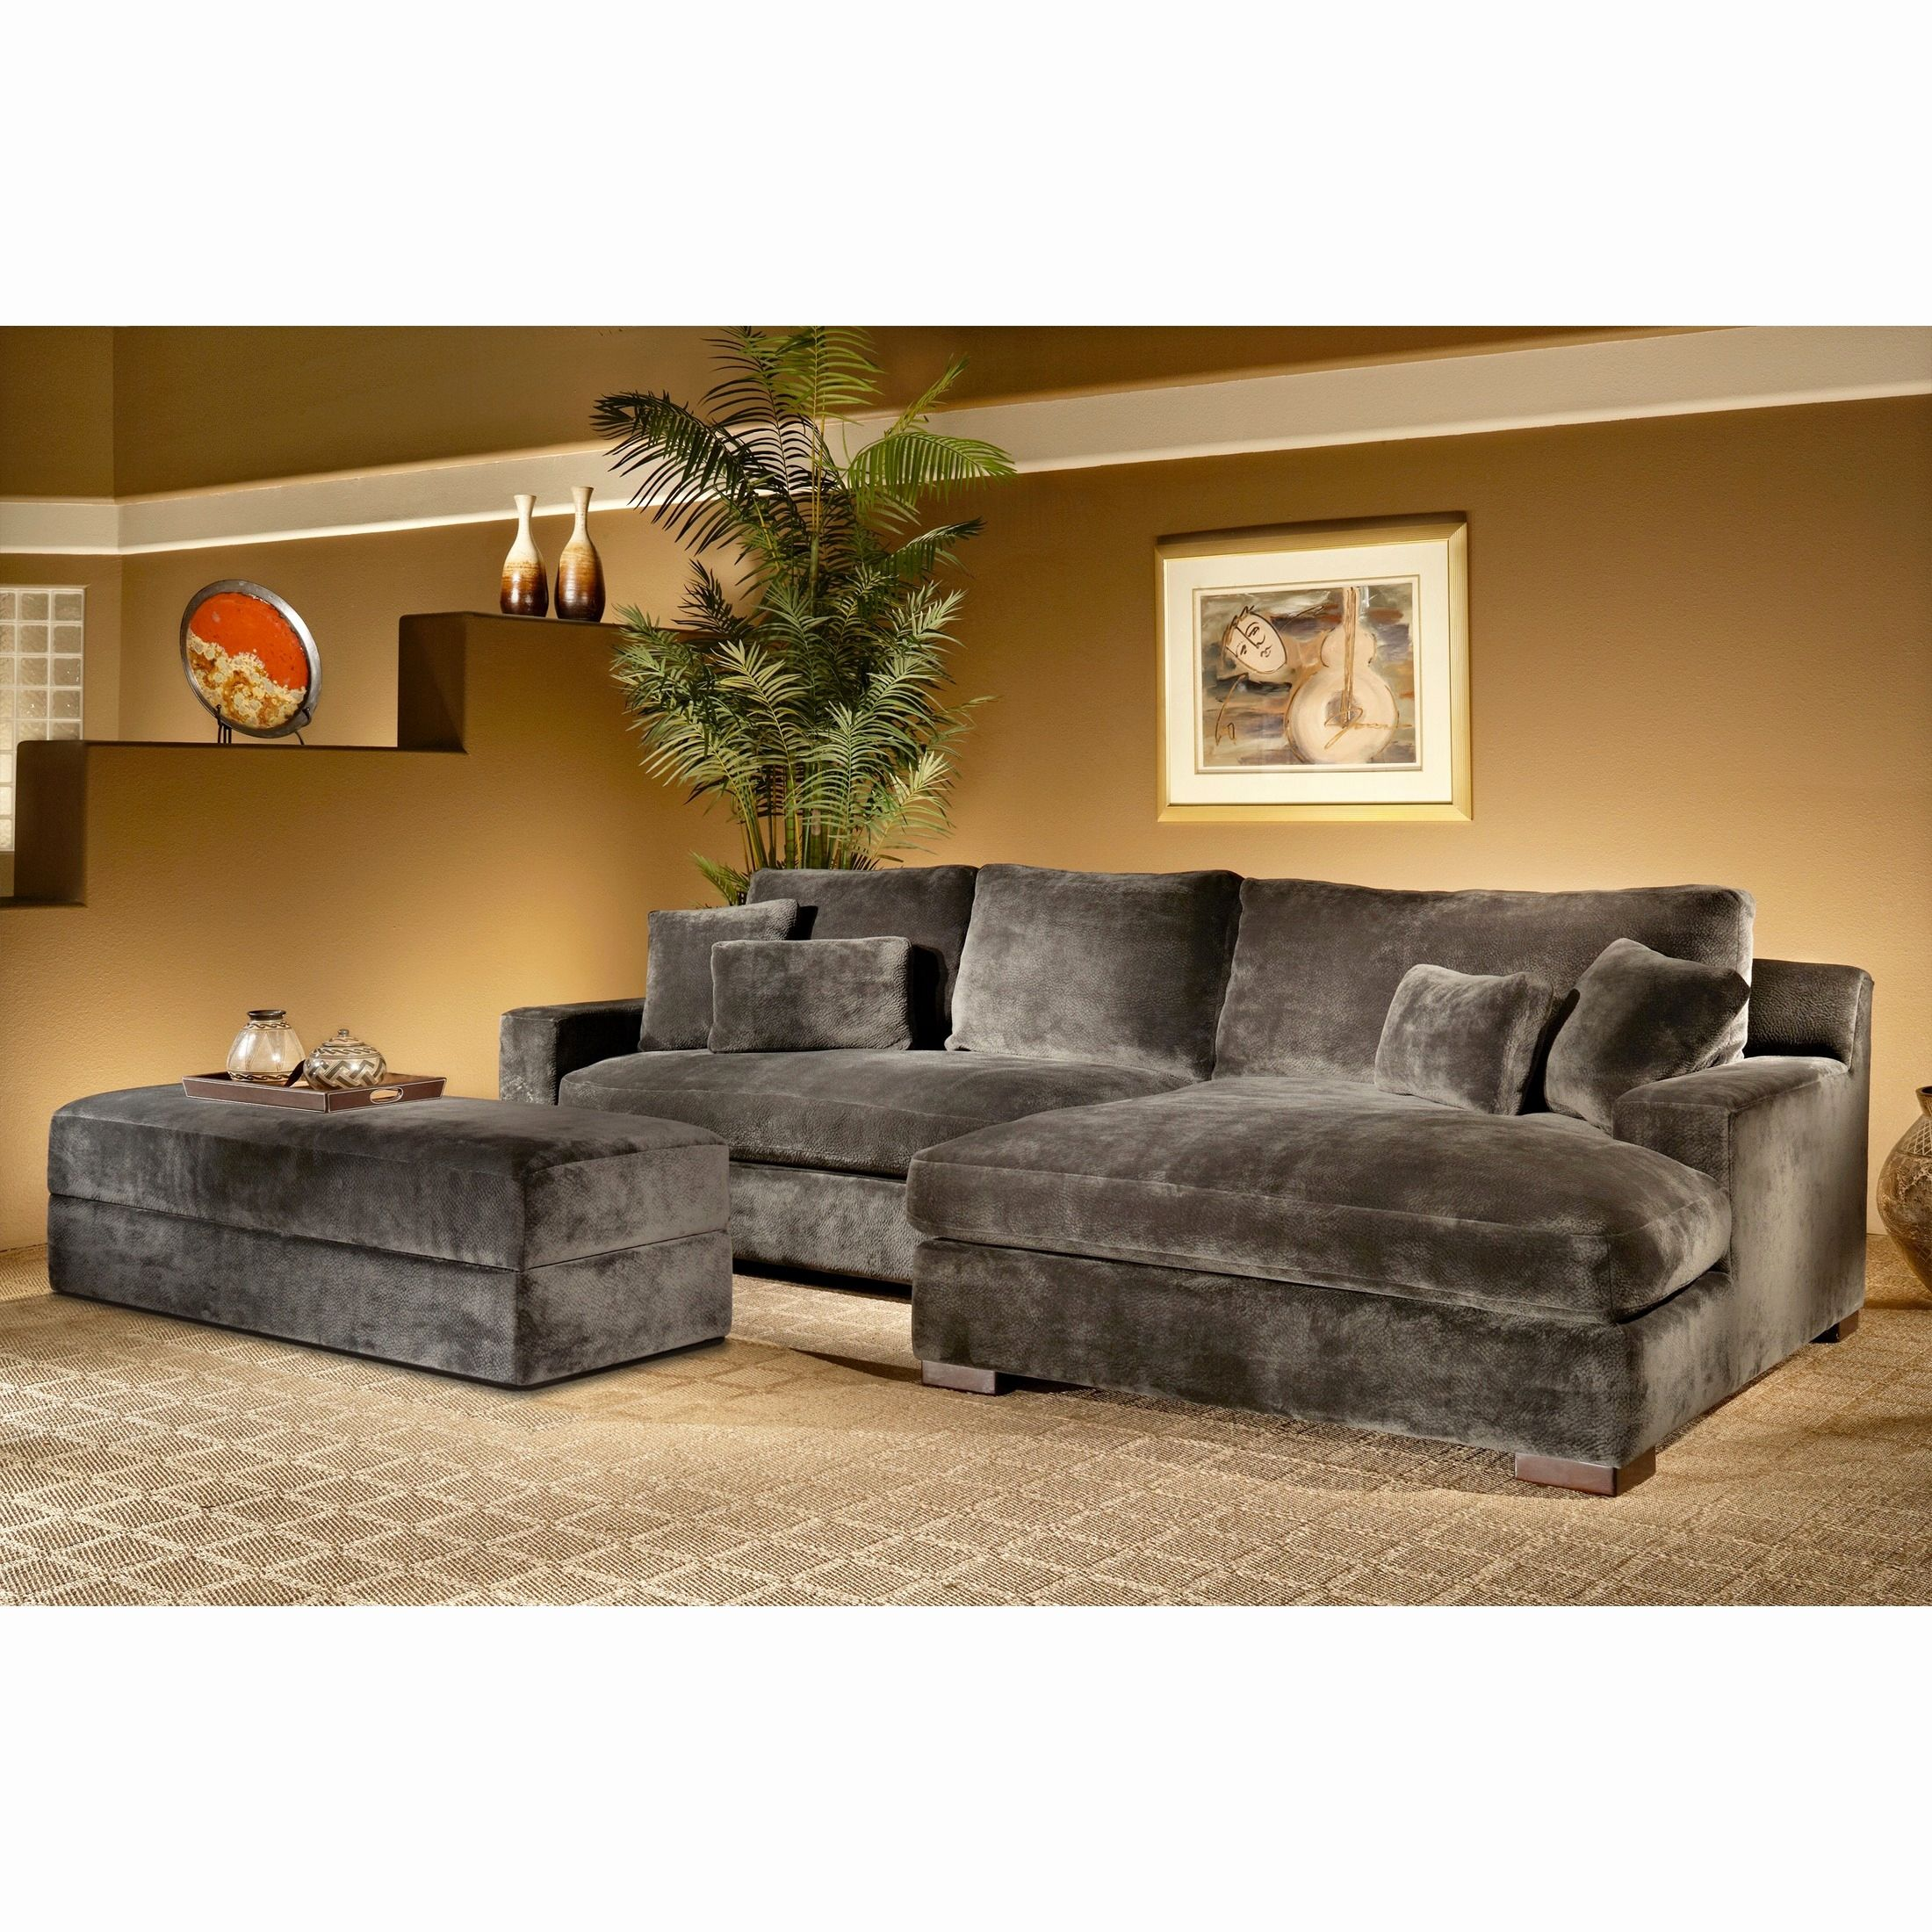 Elegant Extra Wide Sectional Sofa Pictures Extra Wide Sectional Sofa Fresh Gray Velvet Sectional Sleeper 2 Piece Sectional Sofa Fairmont Designs Sectional Sofa